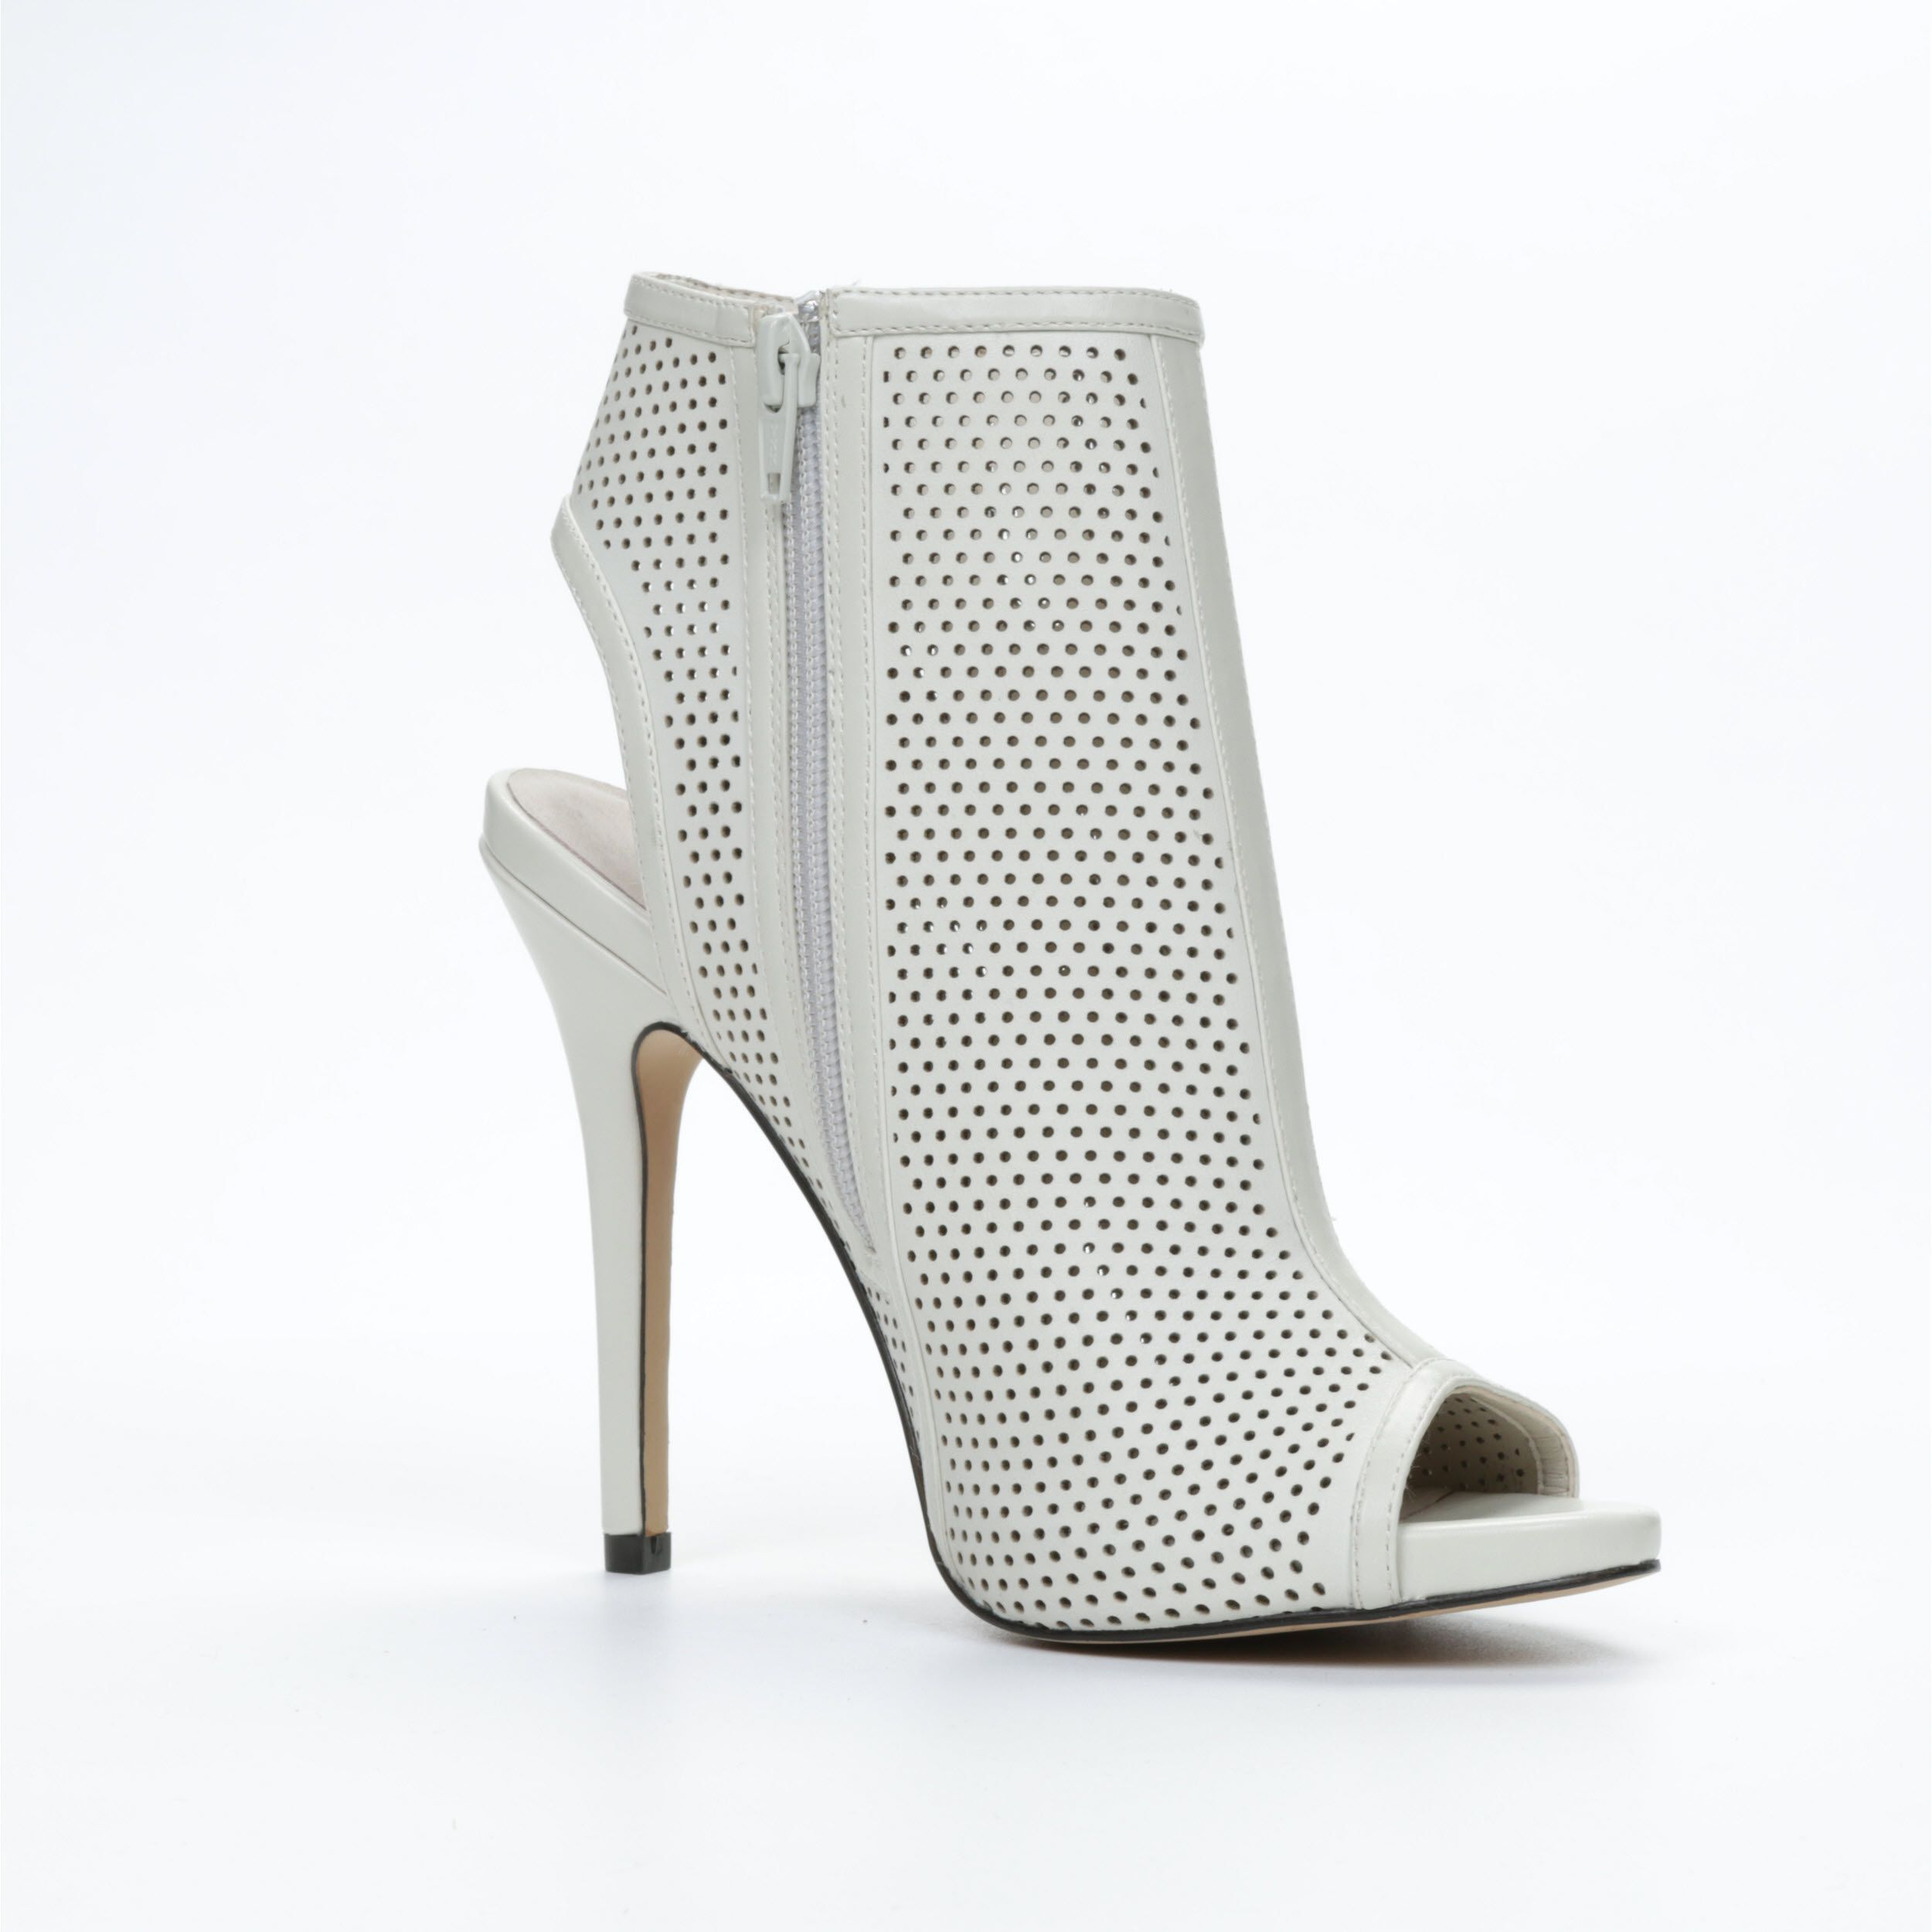 Miralenia laser cut peep toe court shoes